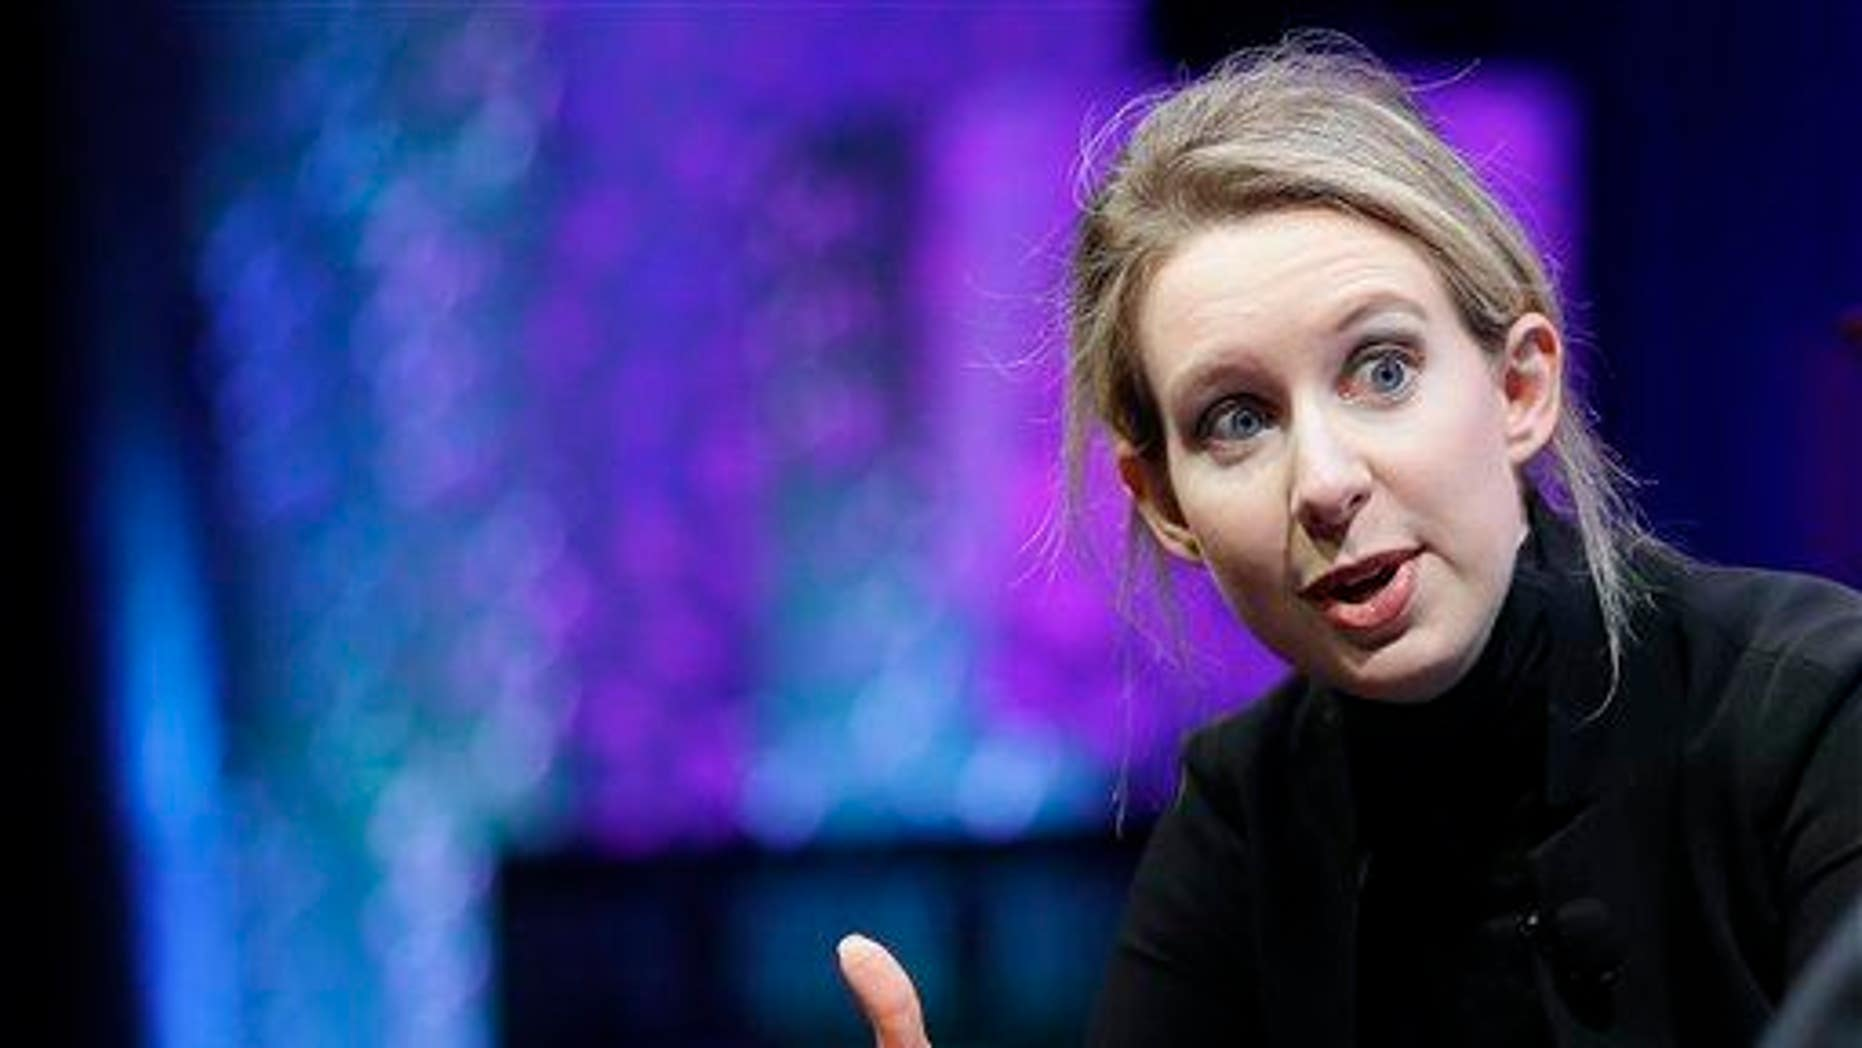 Elizabeth Holmes, founder and CEO of Theranos, can't operate a lab for at least two years, per CMS sanctions.